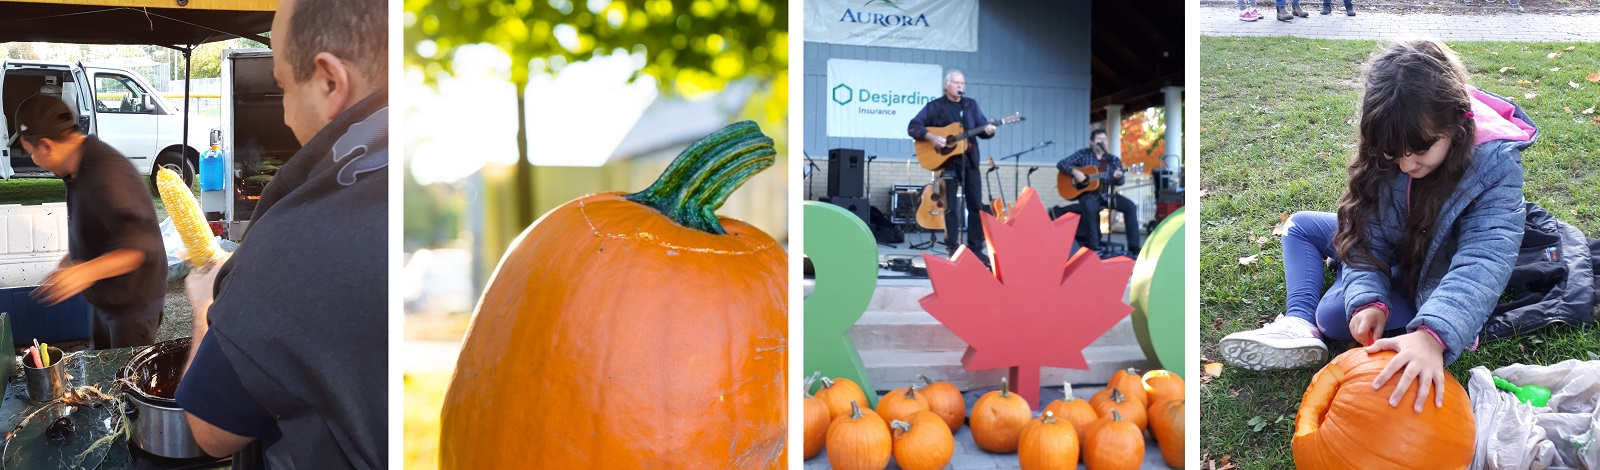 Photos from event - corn on the cob, pumpkin carving, concert